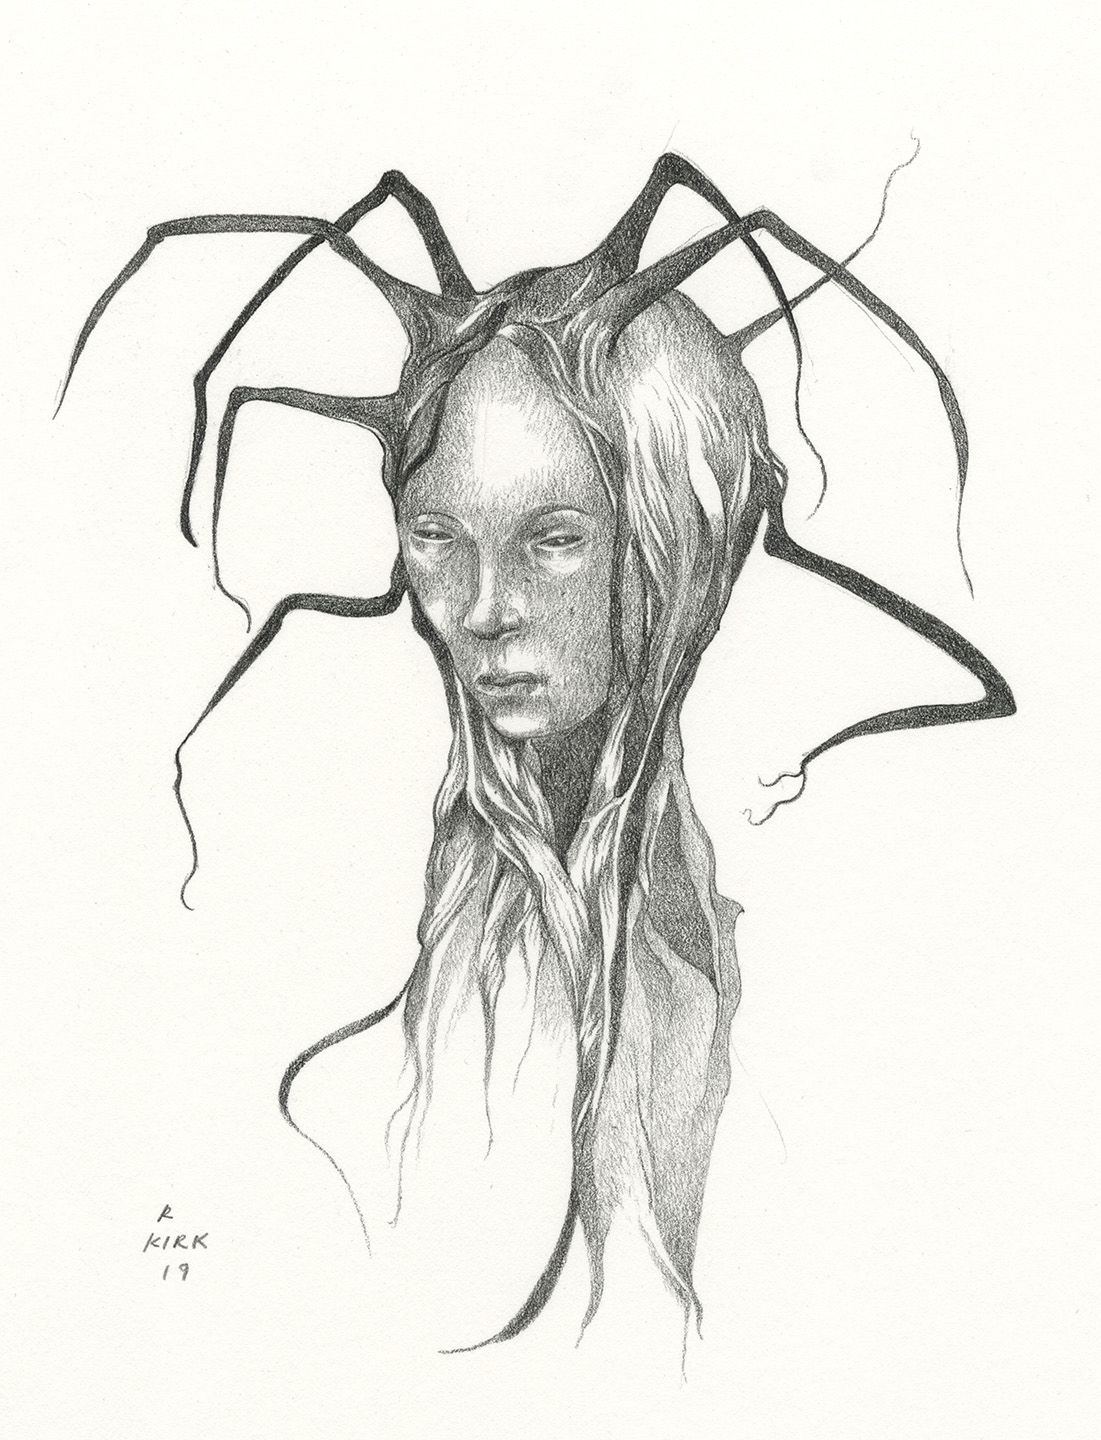 Arachnia, 2019, carbon pencil, approximately 9 x 7